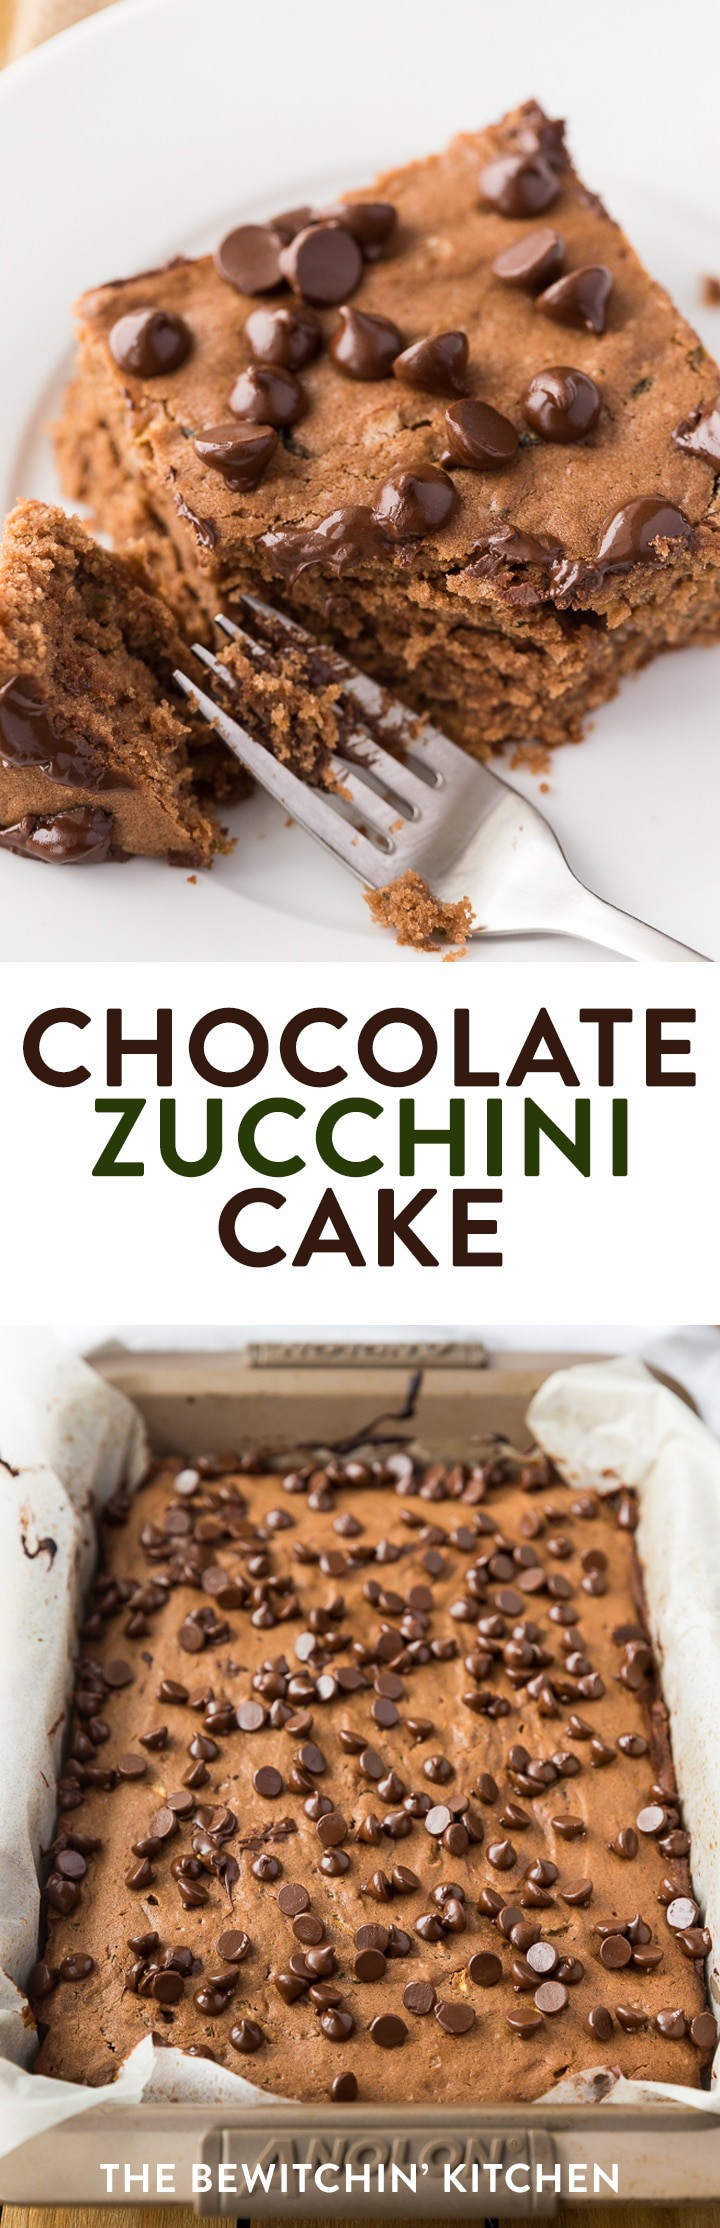 Chocolate Zucchini Cake - this fudgy dessert is a chocolate lovers dream. The zucchini keeps this recipe soft and the chocolate makes it yummy. #zucchinicake #chocolatezucchinicake #dessertrecipes #easydessertrecipes #easycakerecipes #thebewitchinkitchen